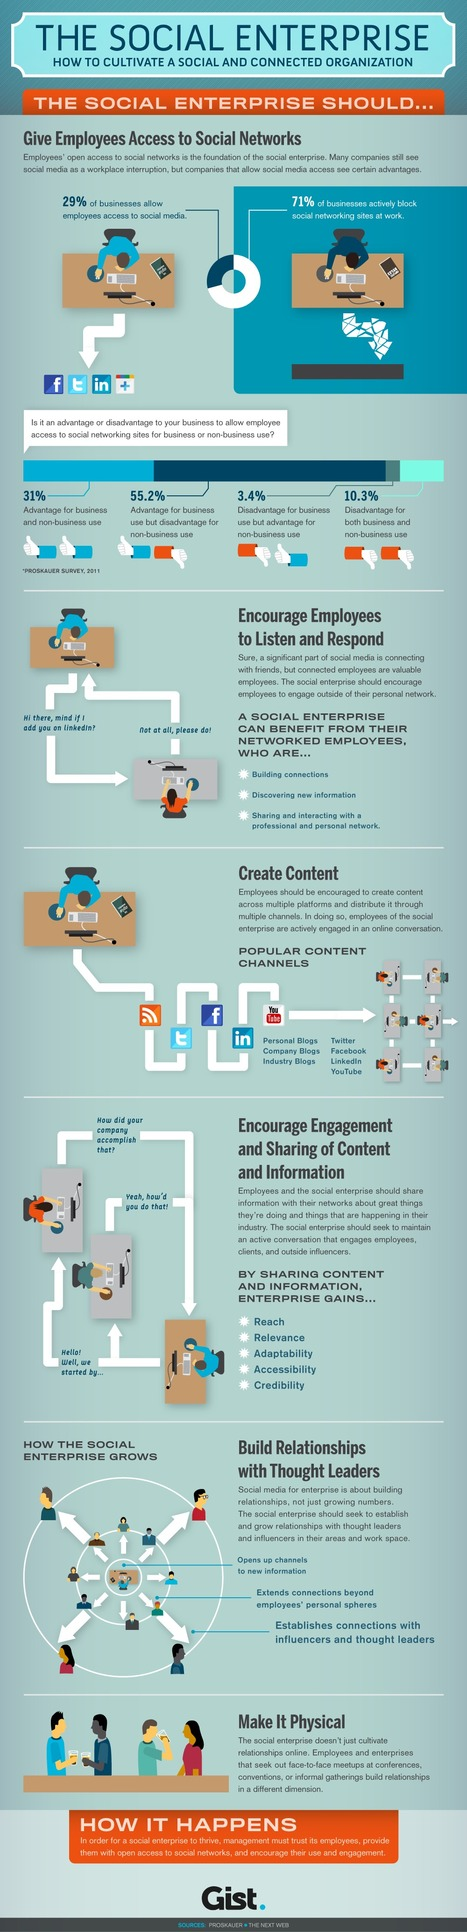 What Does the Social Enterprise Look Like? [infographic] | SEO Labs | Scoop.it